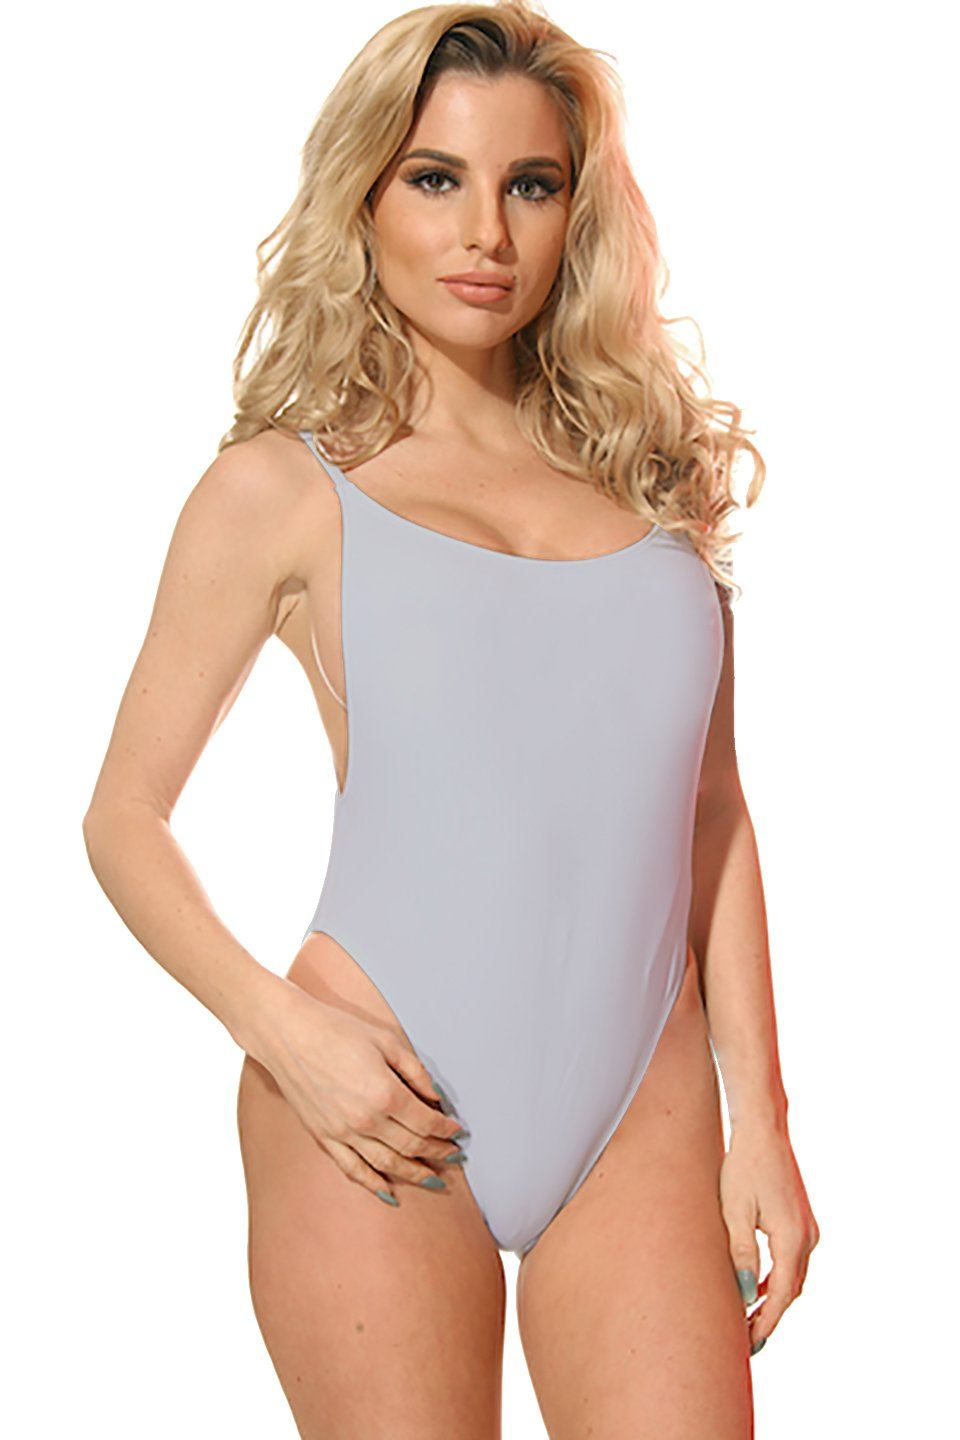 Stone Gray High Cut Vintage Swimsuit Front - Dippin' Daisy's Swimwear